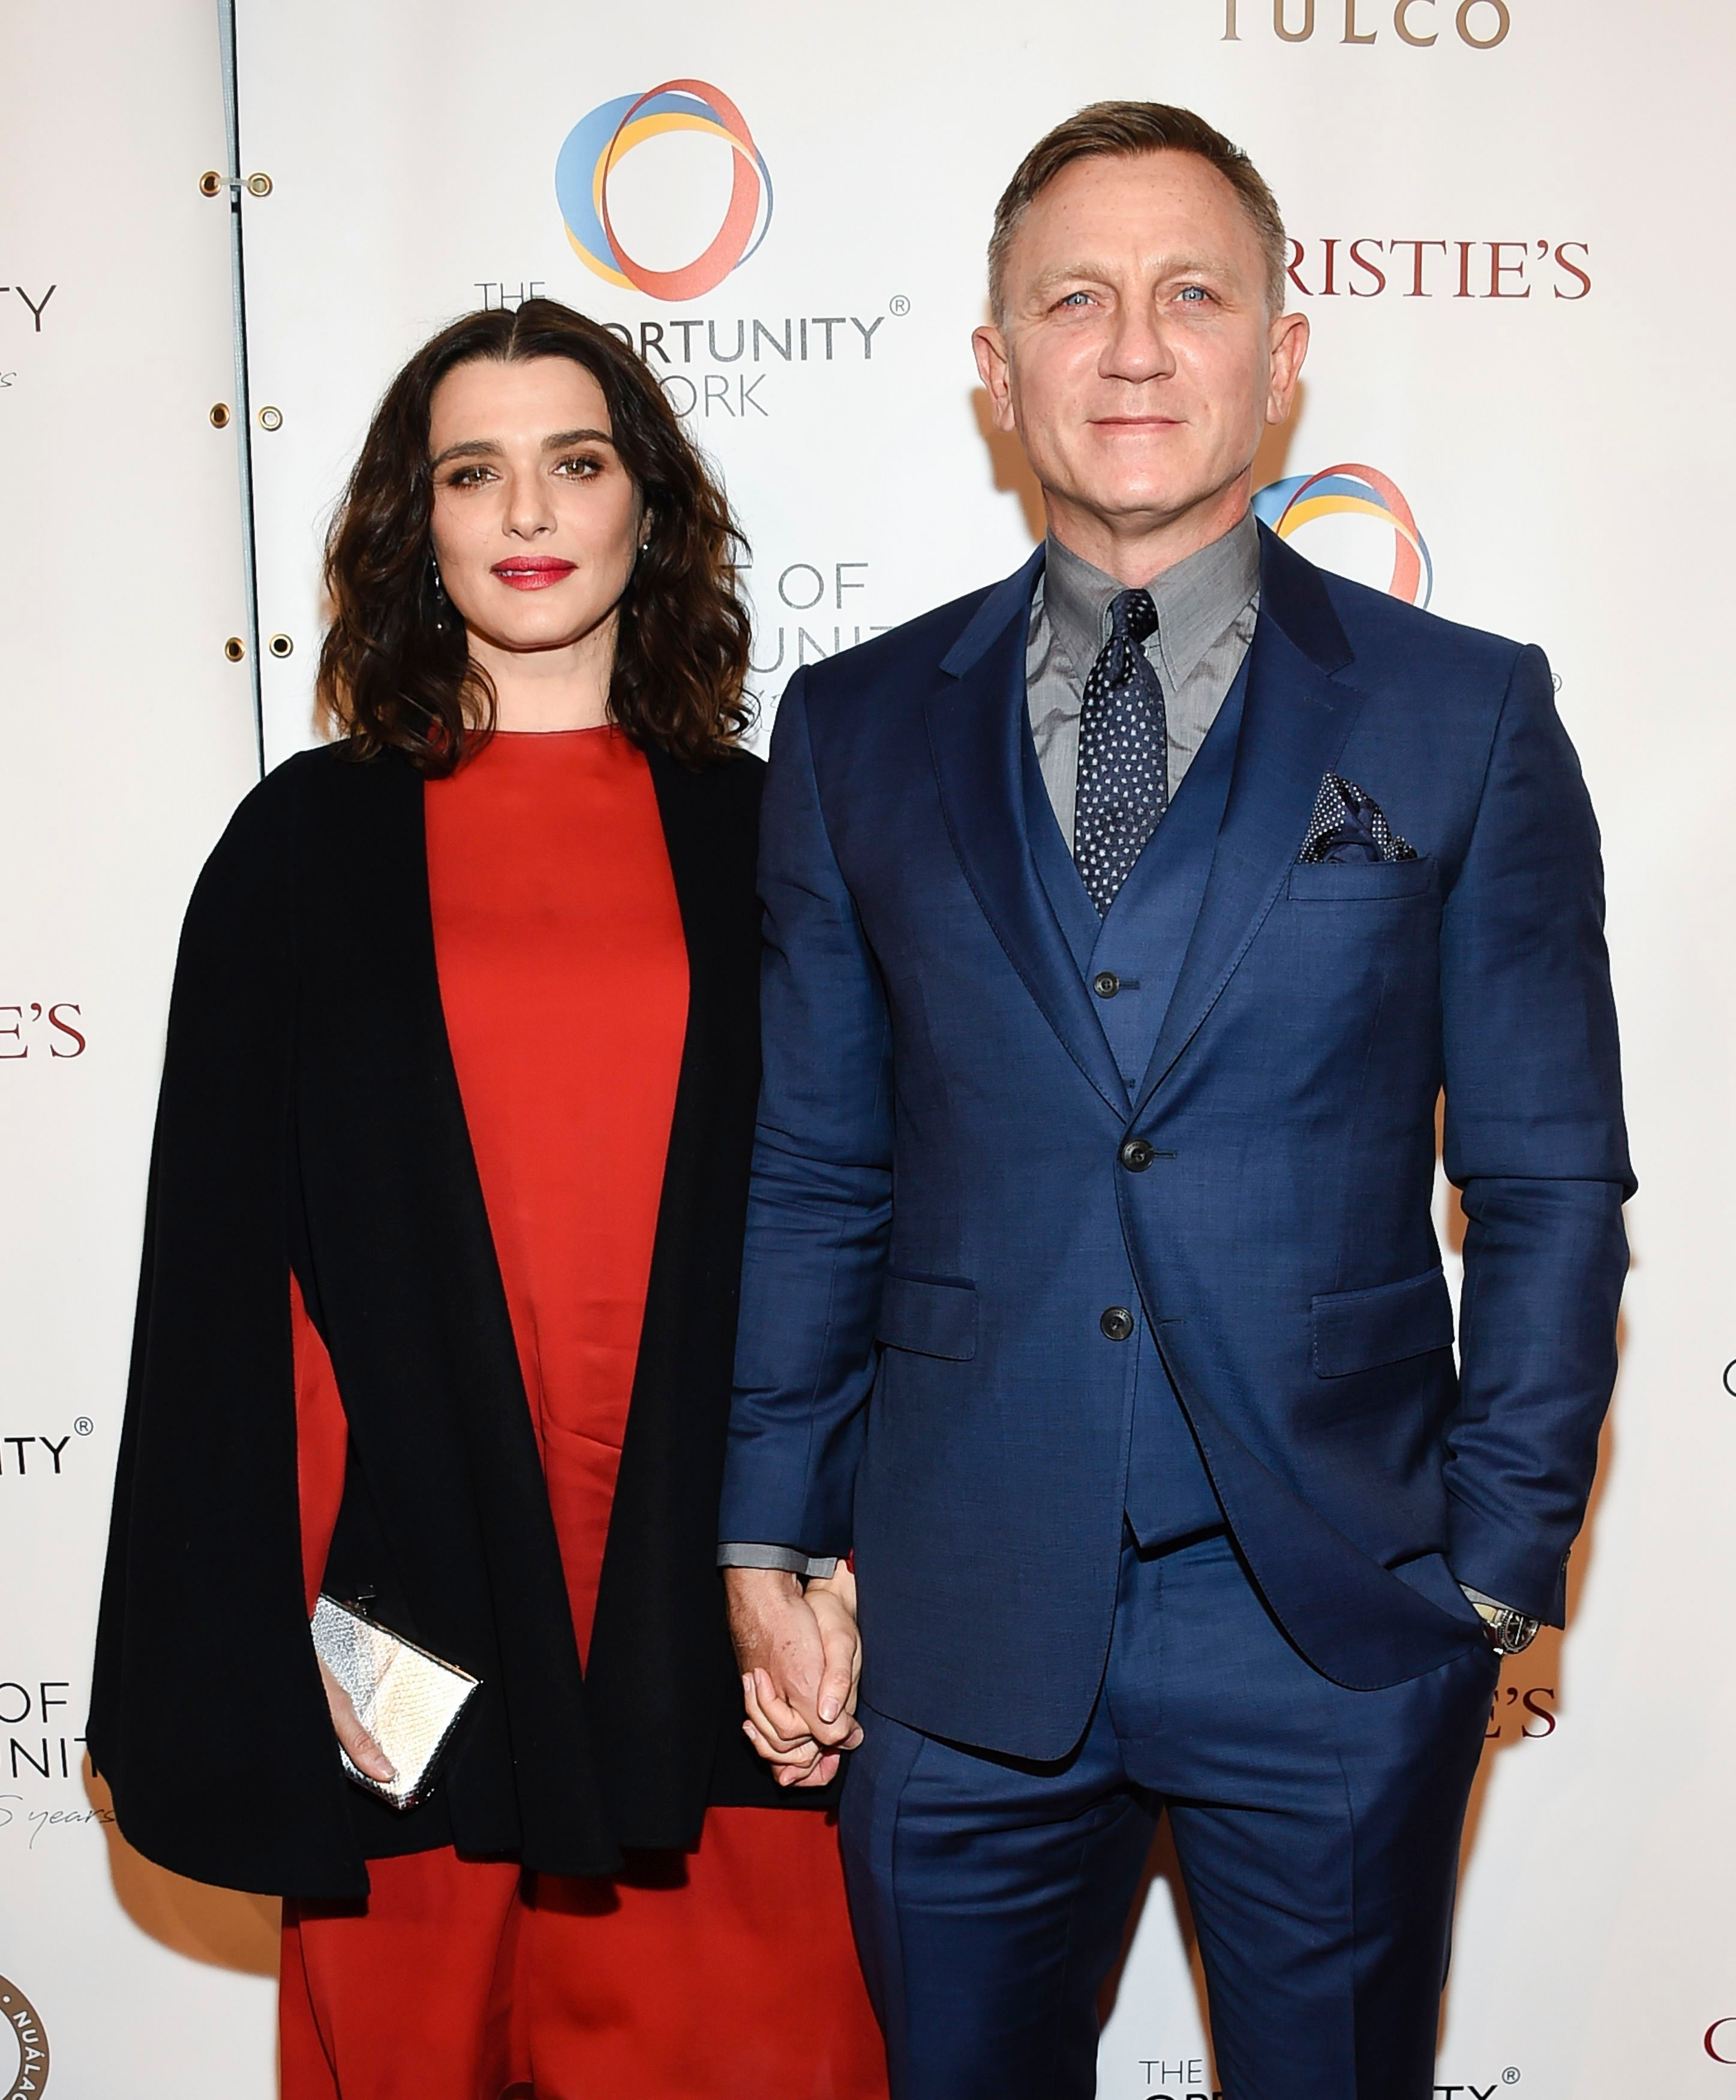 Rachel Weisz and Daniel Craig attend The Opportunity Network's 11th Annual Night of Opportunity Gala at Cipriani Wall Street in New York City on April 9, 2018.